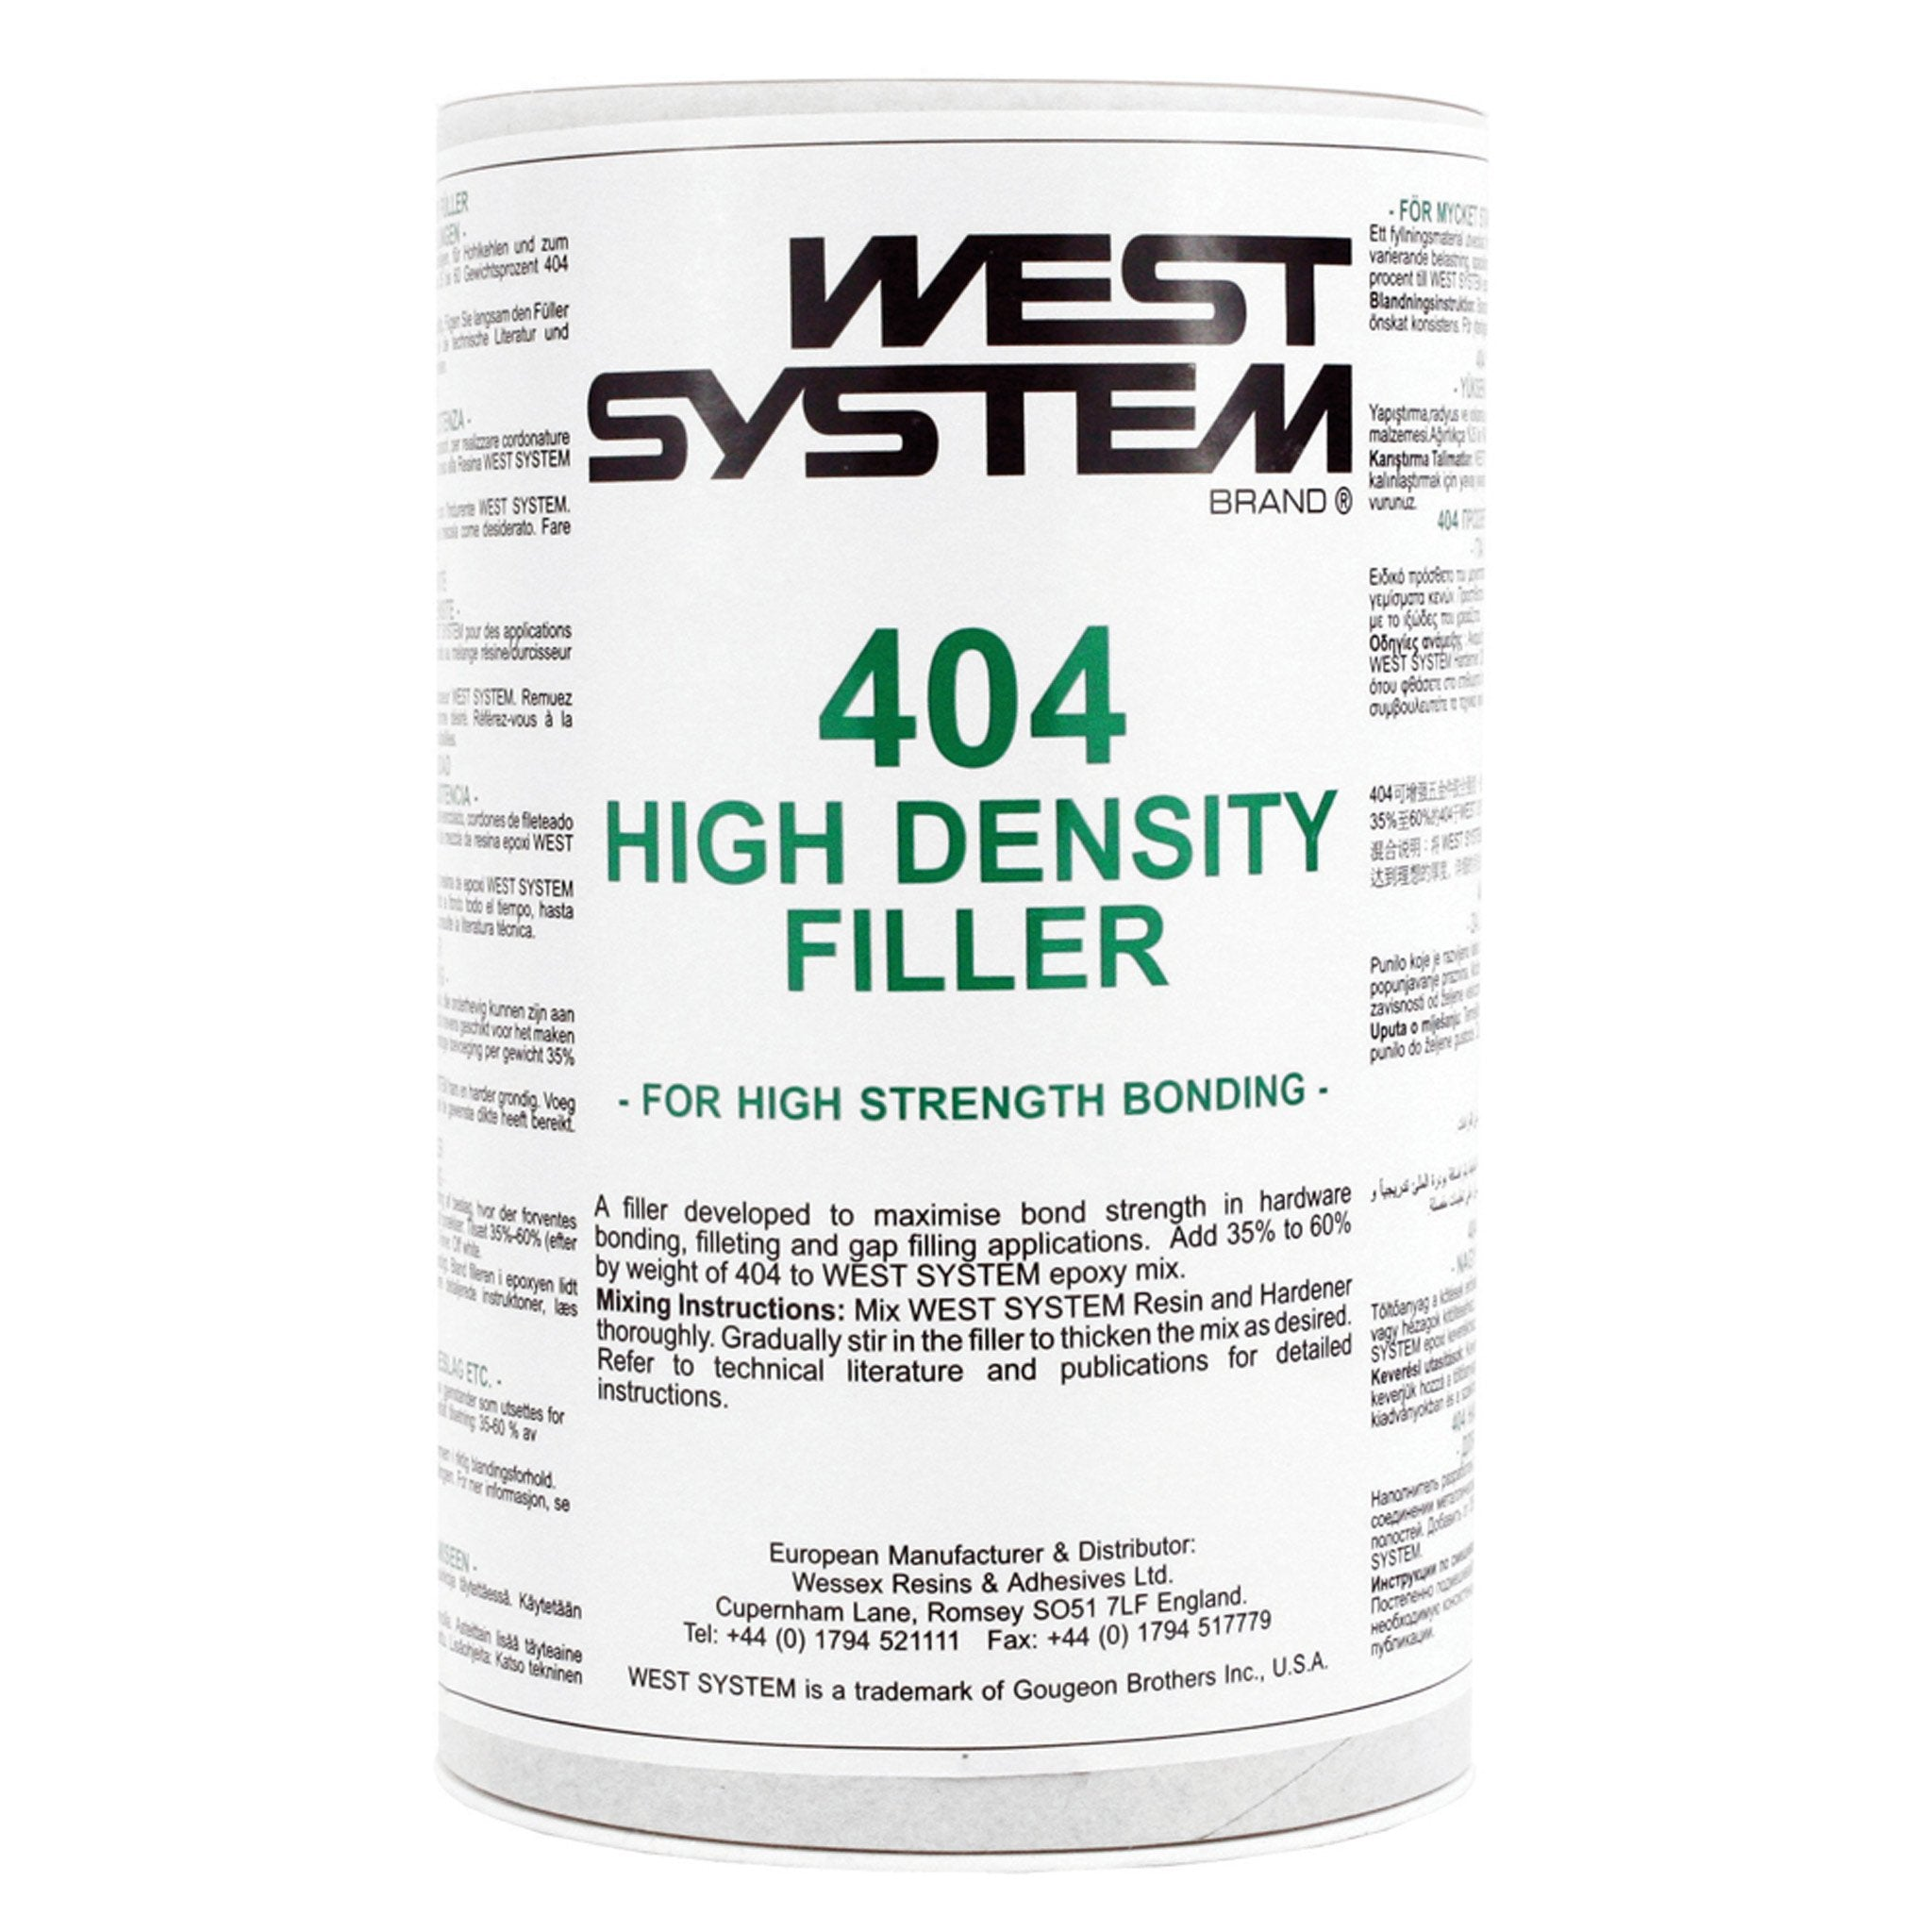 West System 404 High Density Filler - Arthur Beale